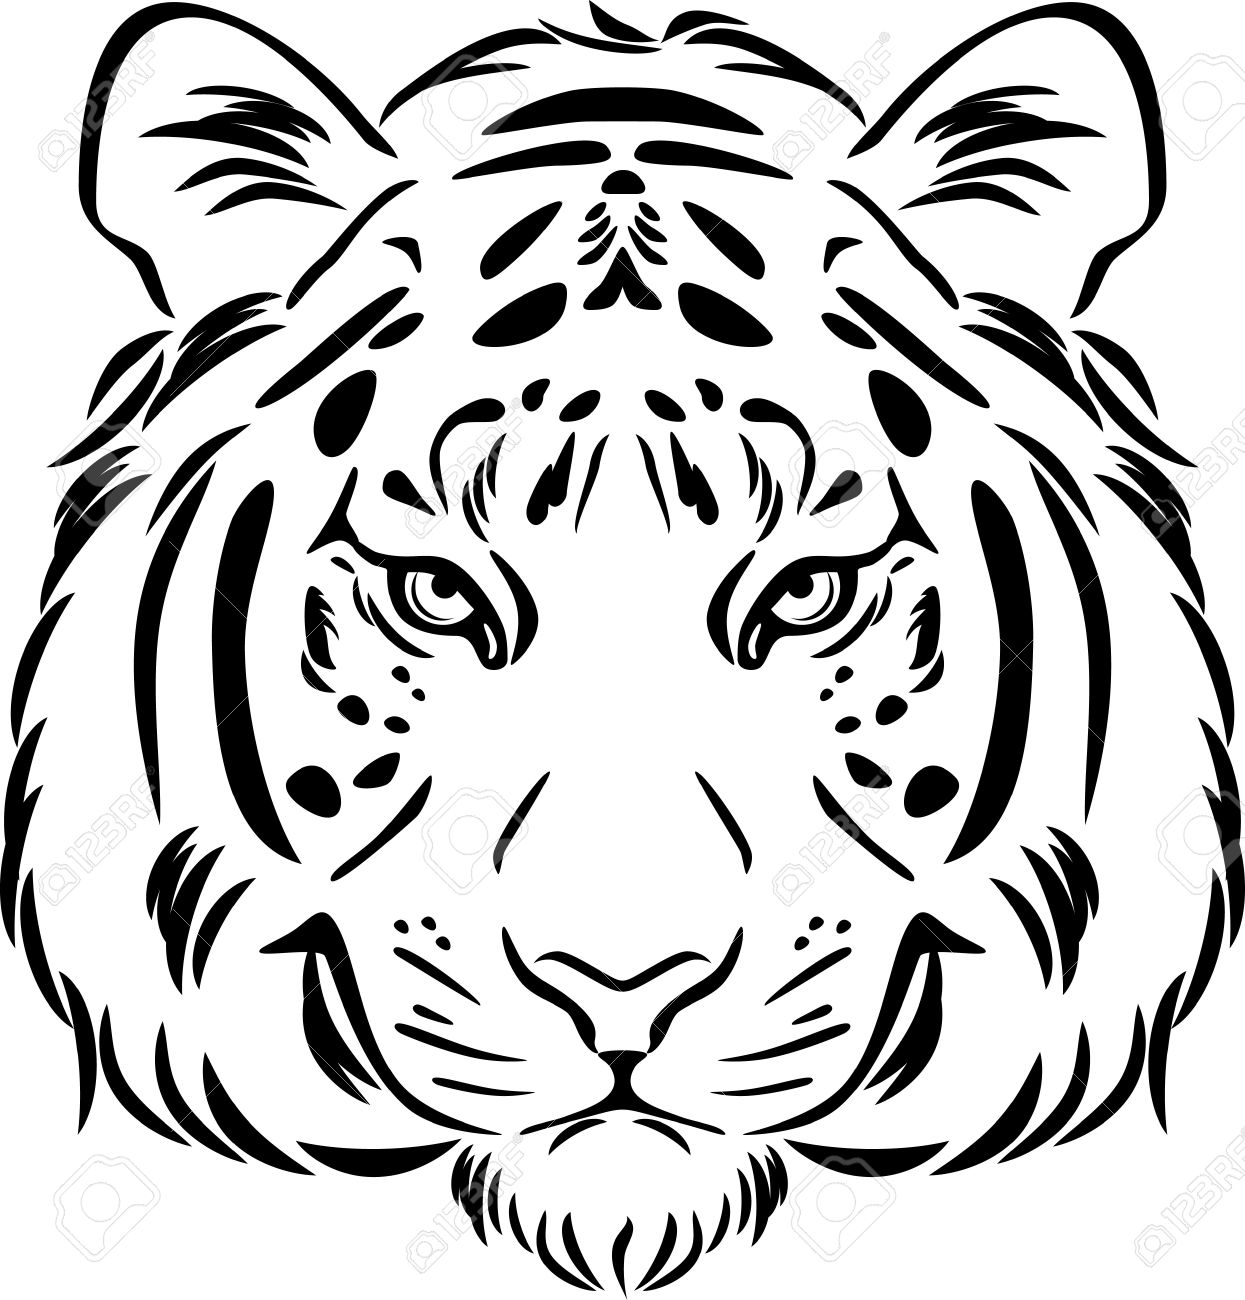 tiger face coloring tiger outline drawing at getdrawings free download tiger coloring face